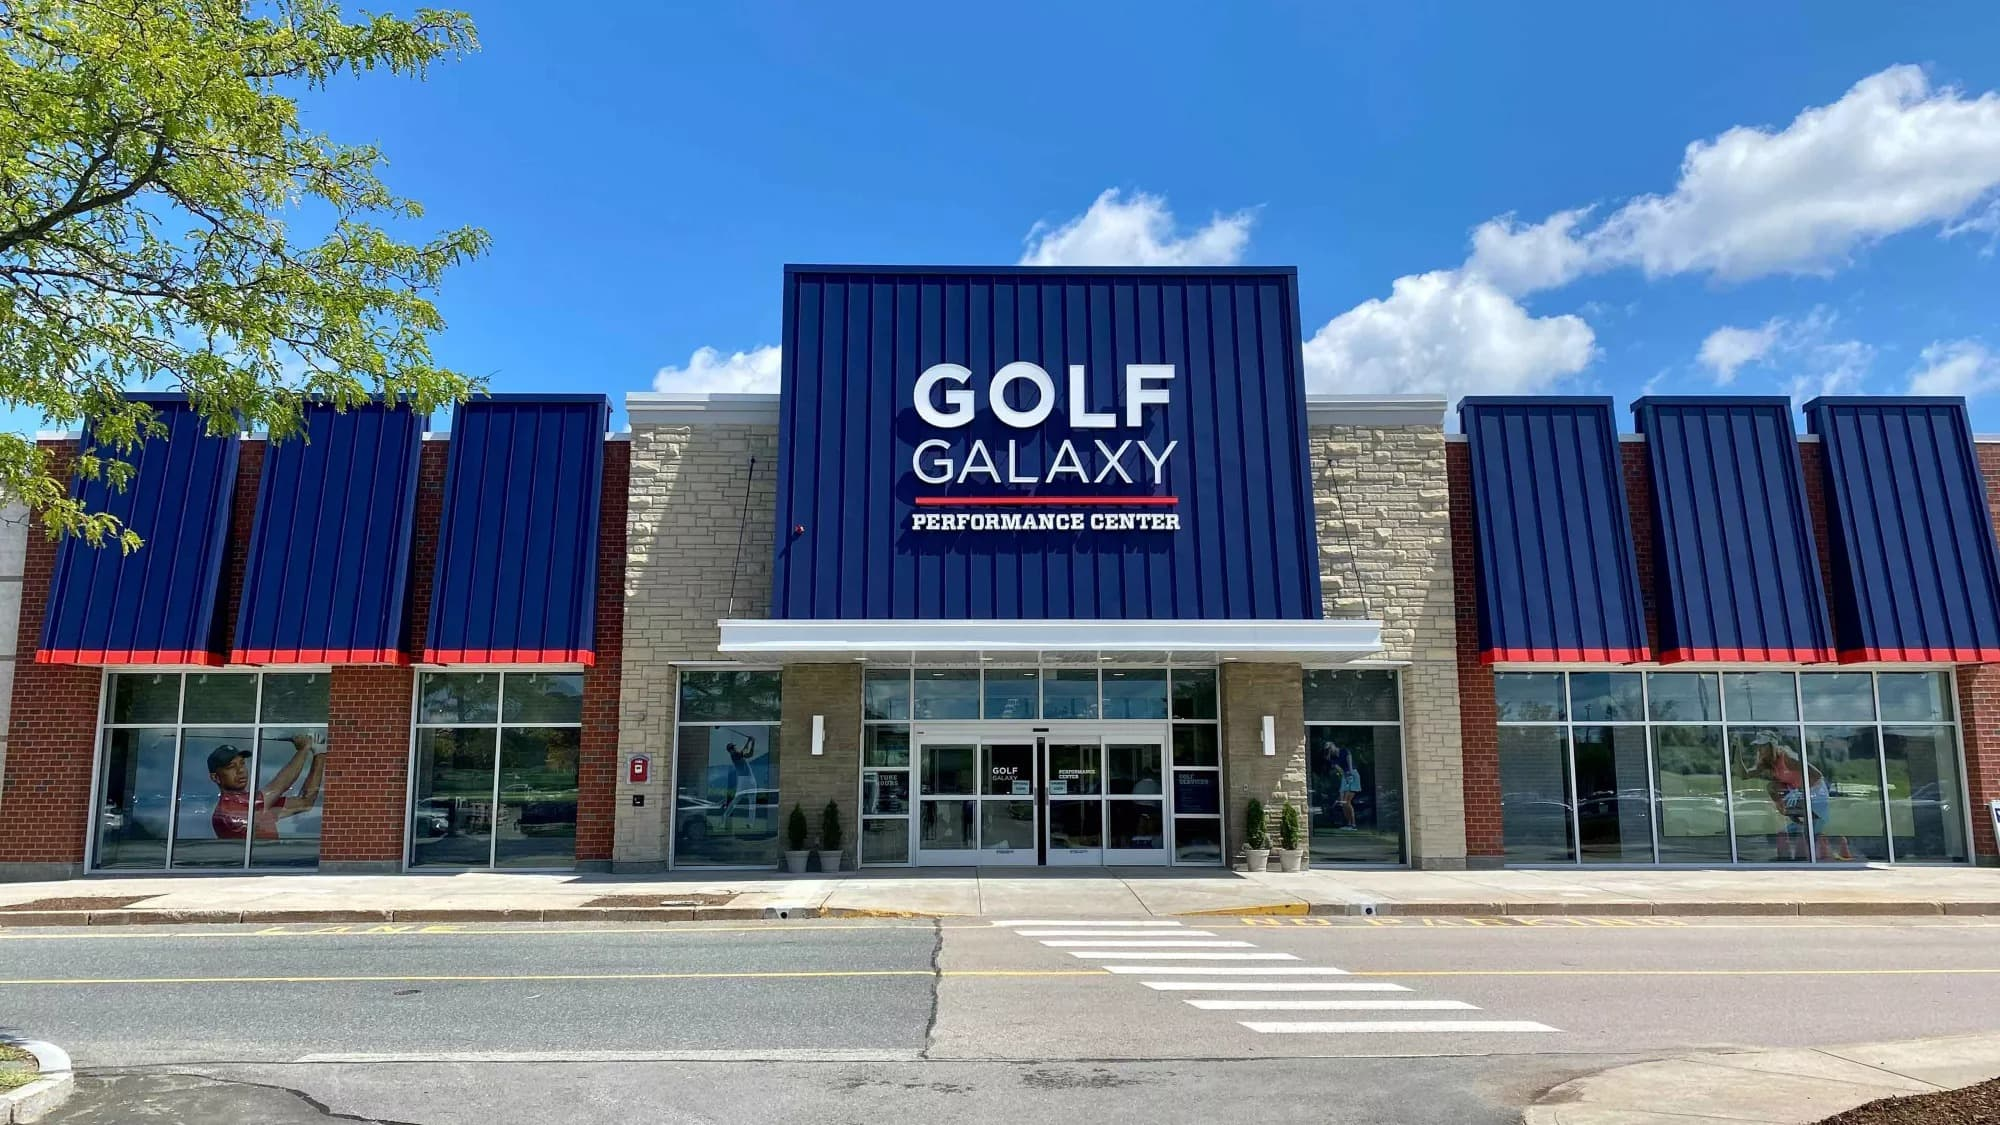 Storefront of Golf Galaxy store in Framingham, MA